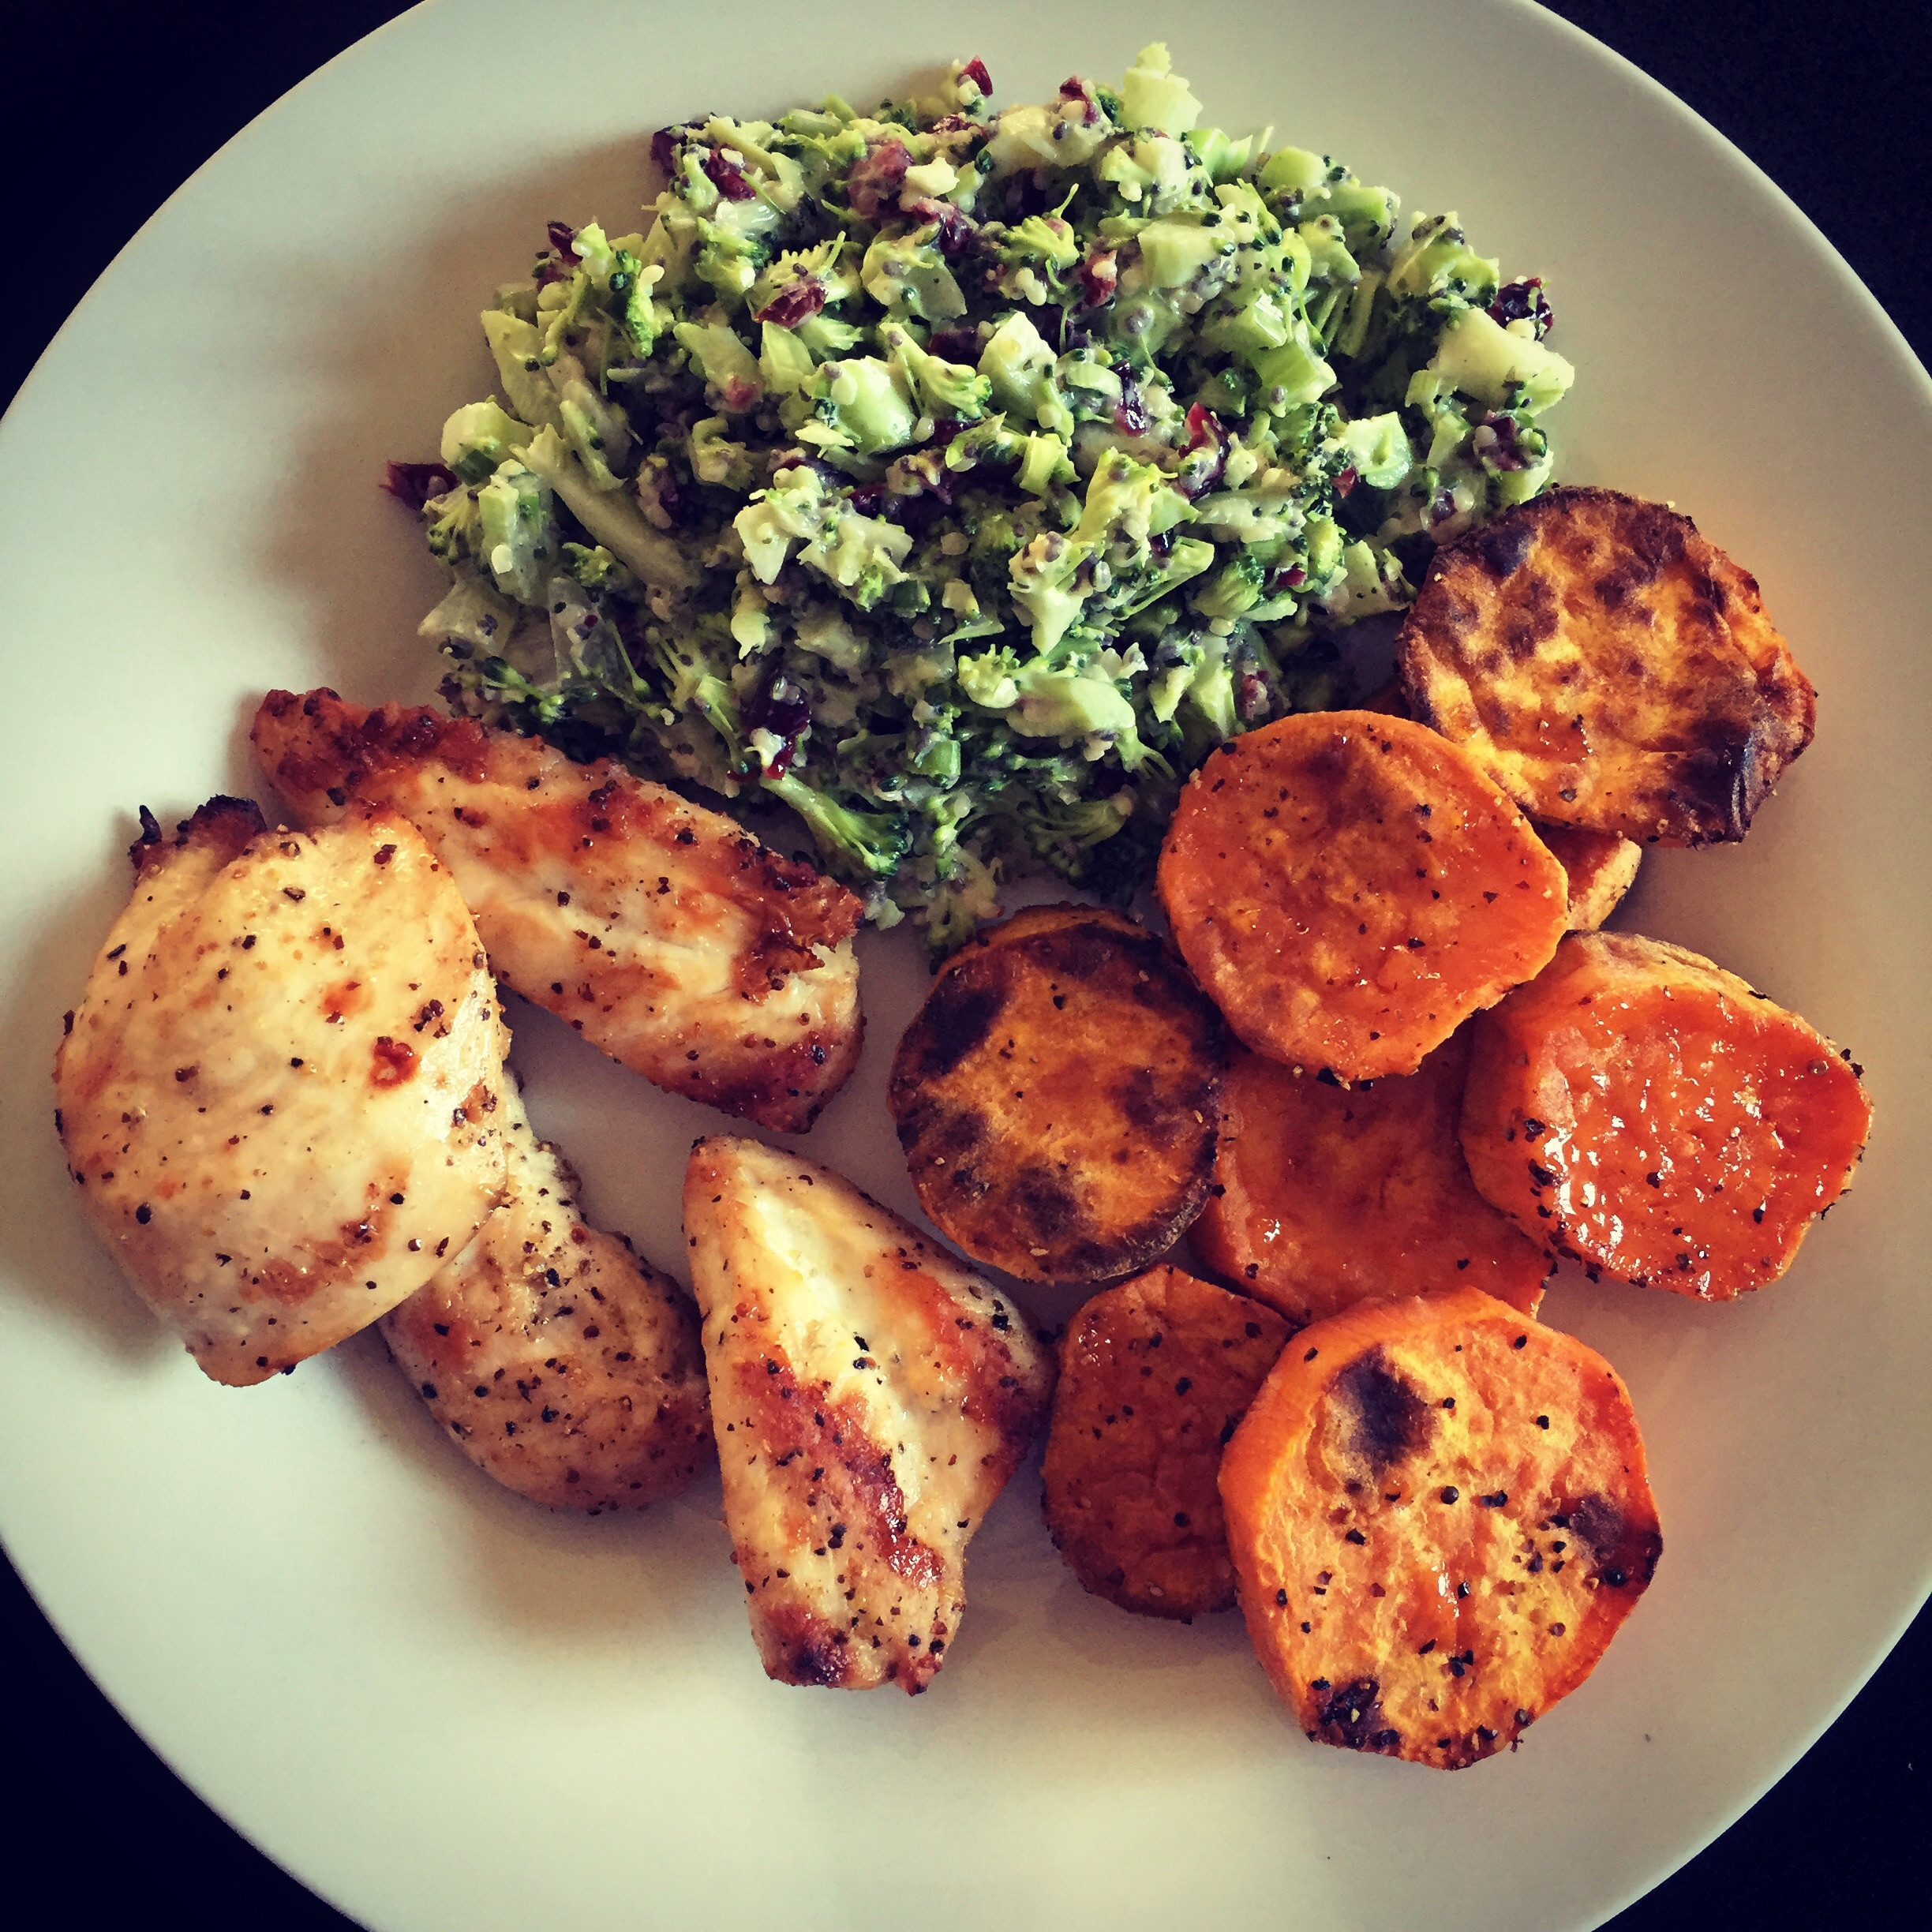 Broccoli slaw with barbecued chicken and roasted sweet potatoes